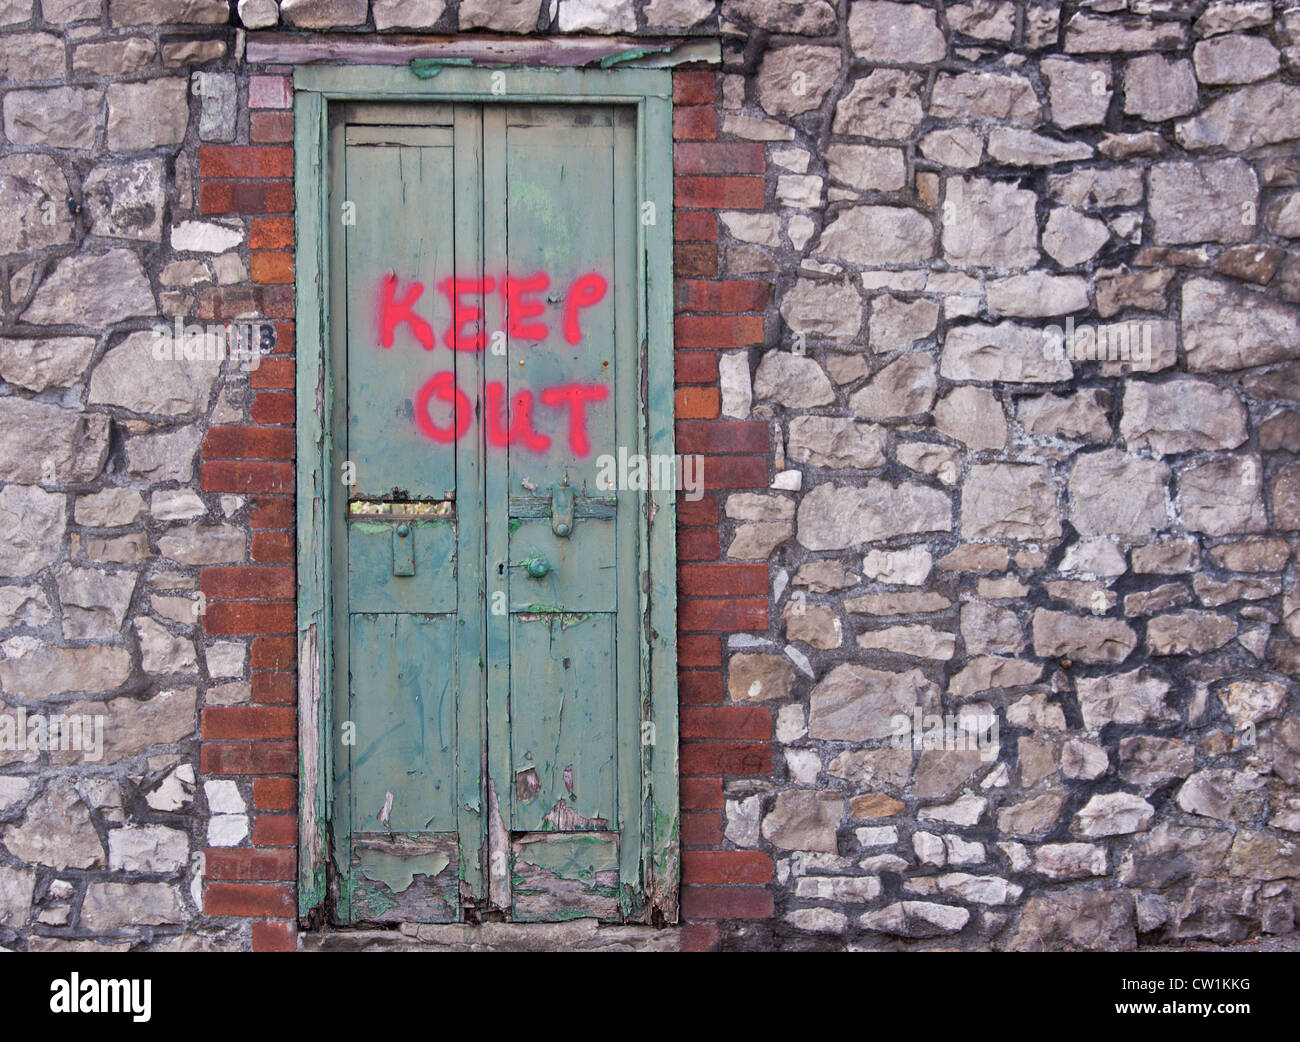 Makeshift warning sign forbidding entry to a derelict site in Bristol, England - Stock Image